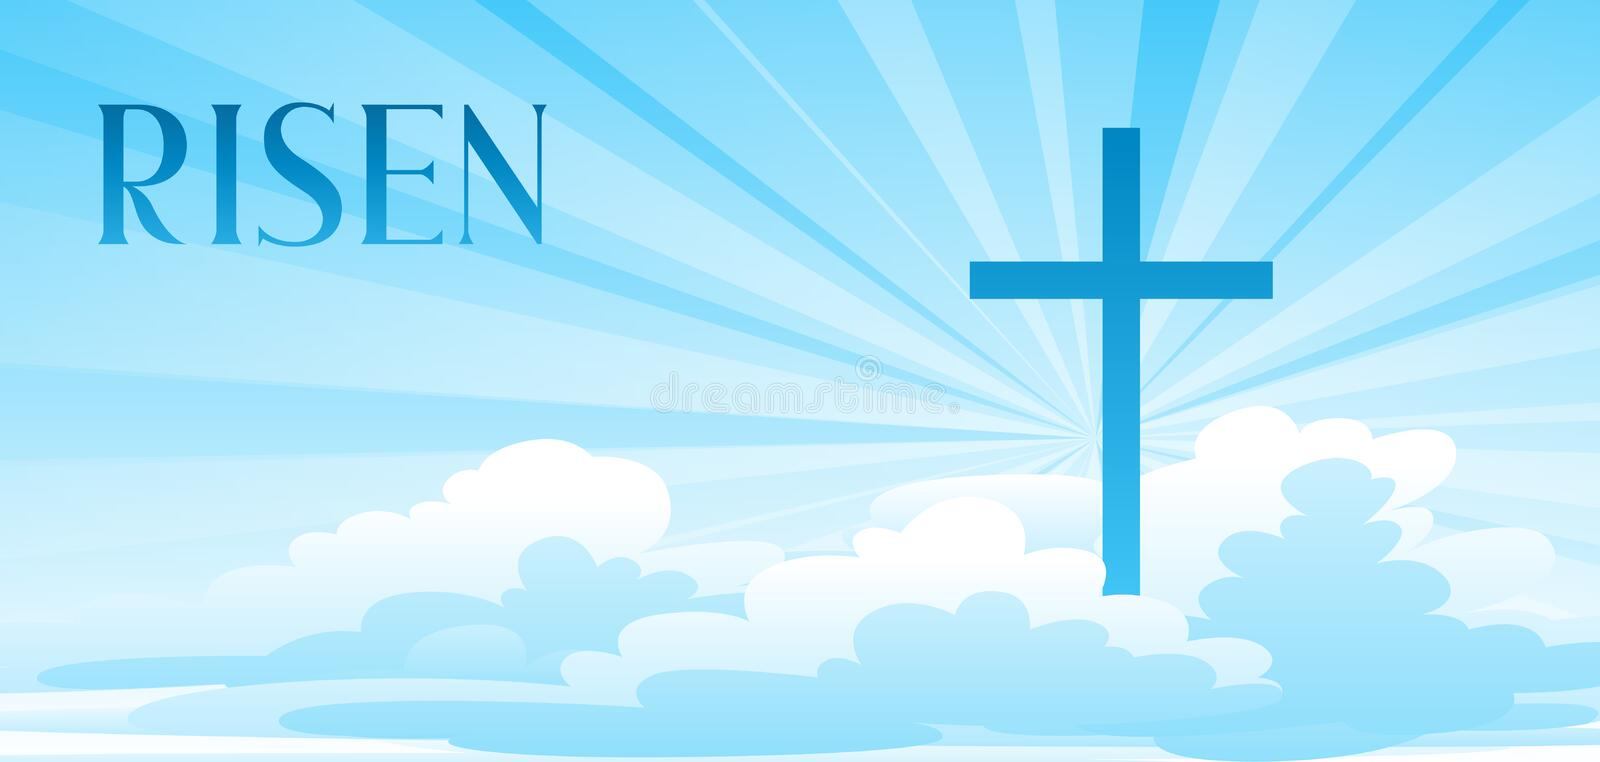 Risen. Easter illustration. Greeting card with cross and clouds. Religious symbol of faith royalty free illustration